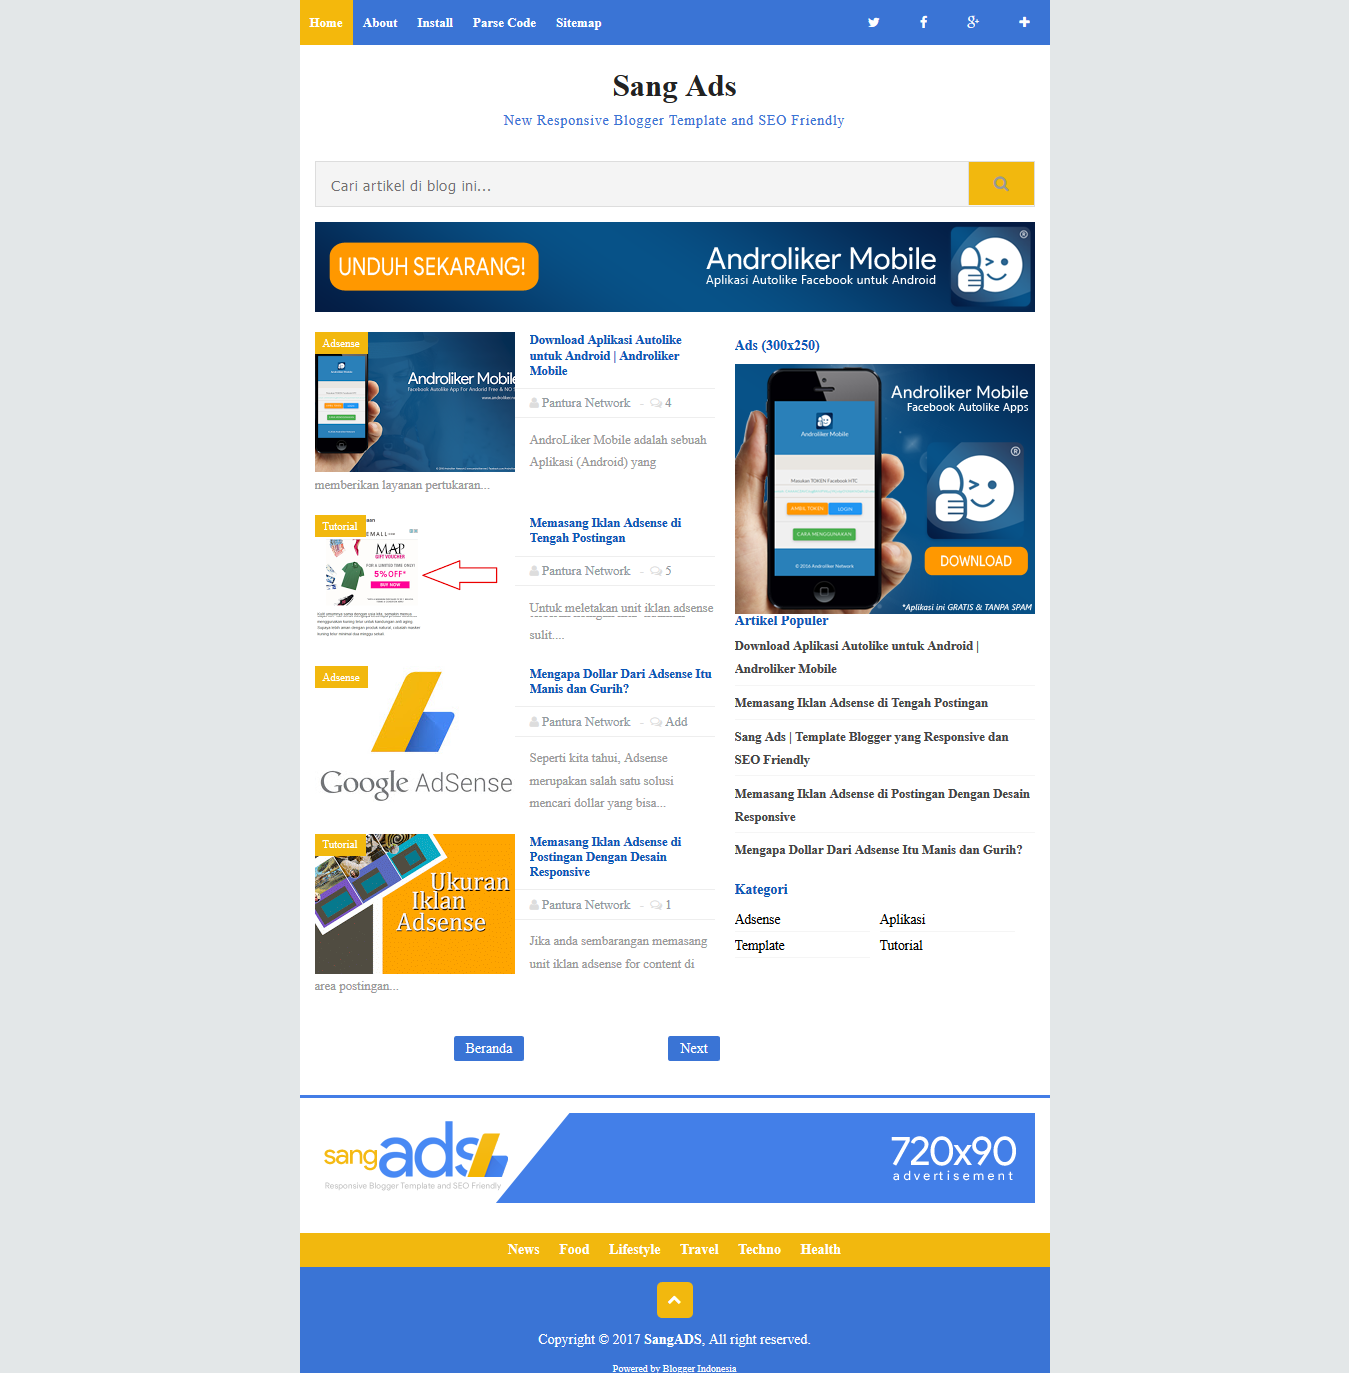 Sang Ads High Ctr Responsive Blogger Template